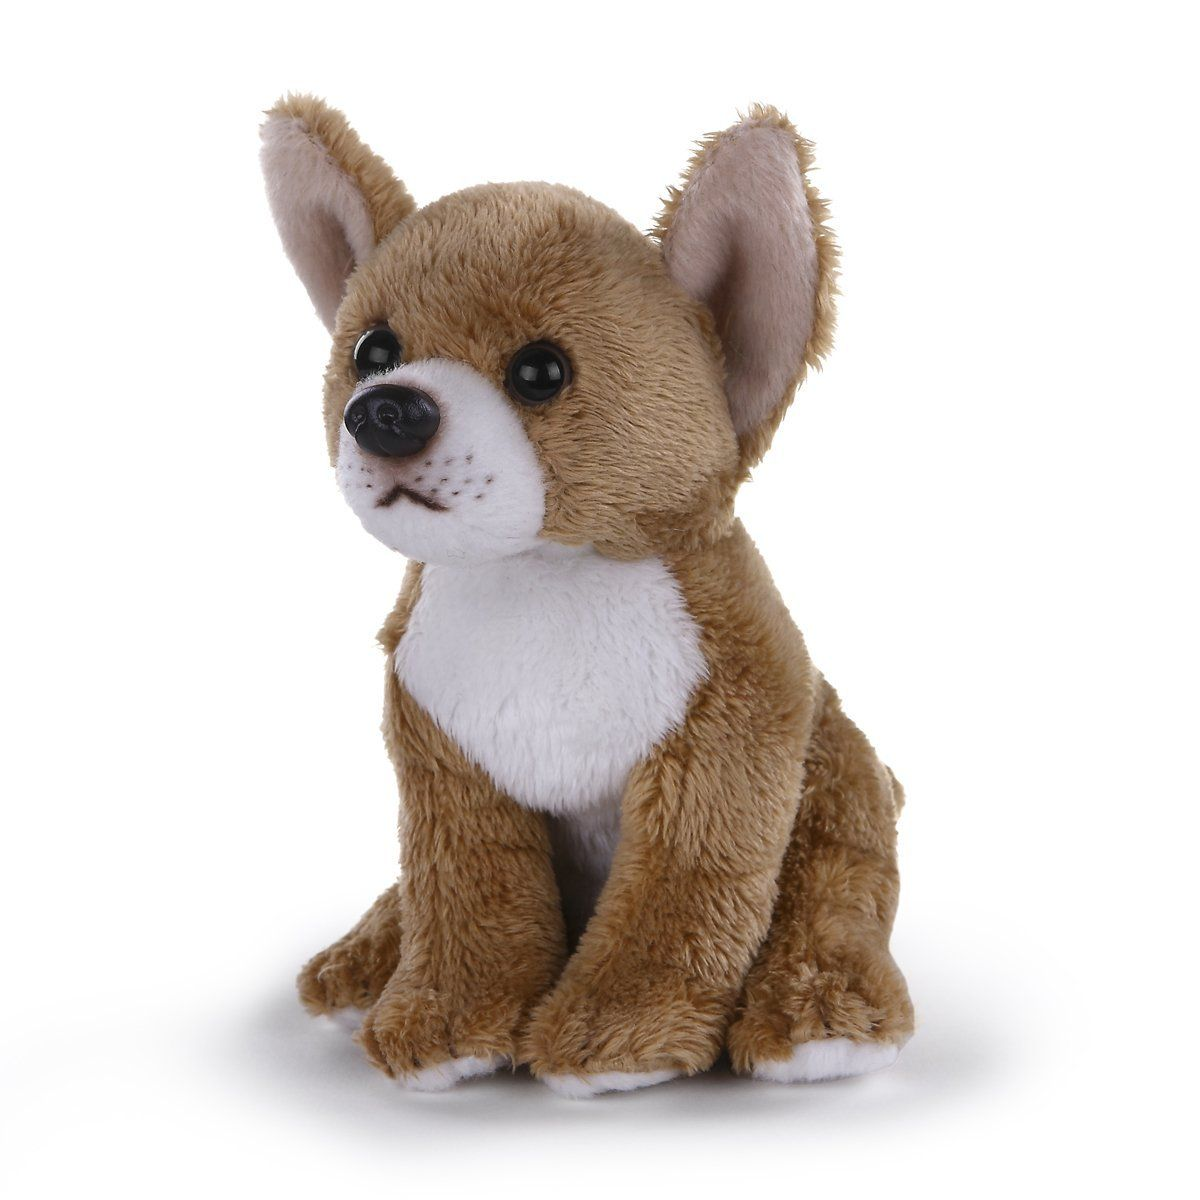 Chihuahua Beanbag 5 5 Inch Stuffed Animal By Nat And Jules